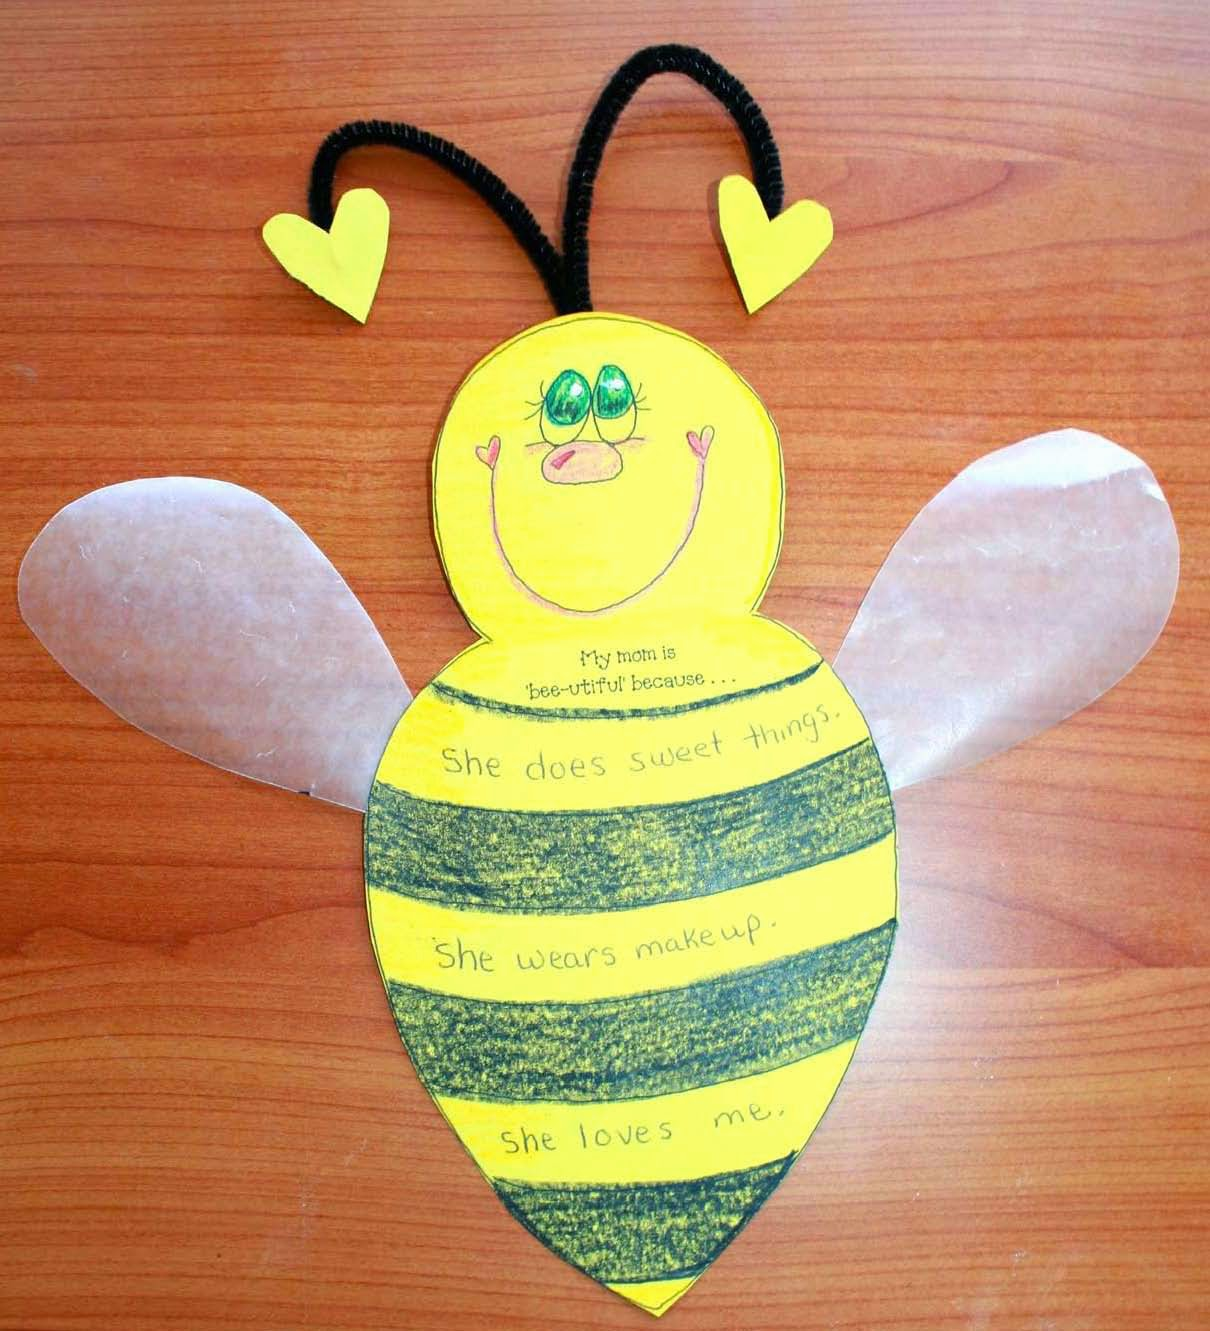 My Mom Is Bee Utiful BecauseWriting Prompt Craftivity For Mothers Day